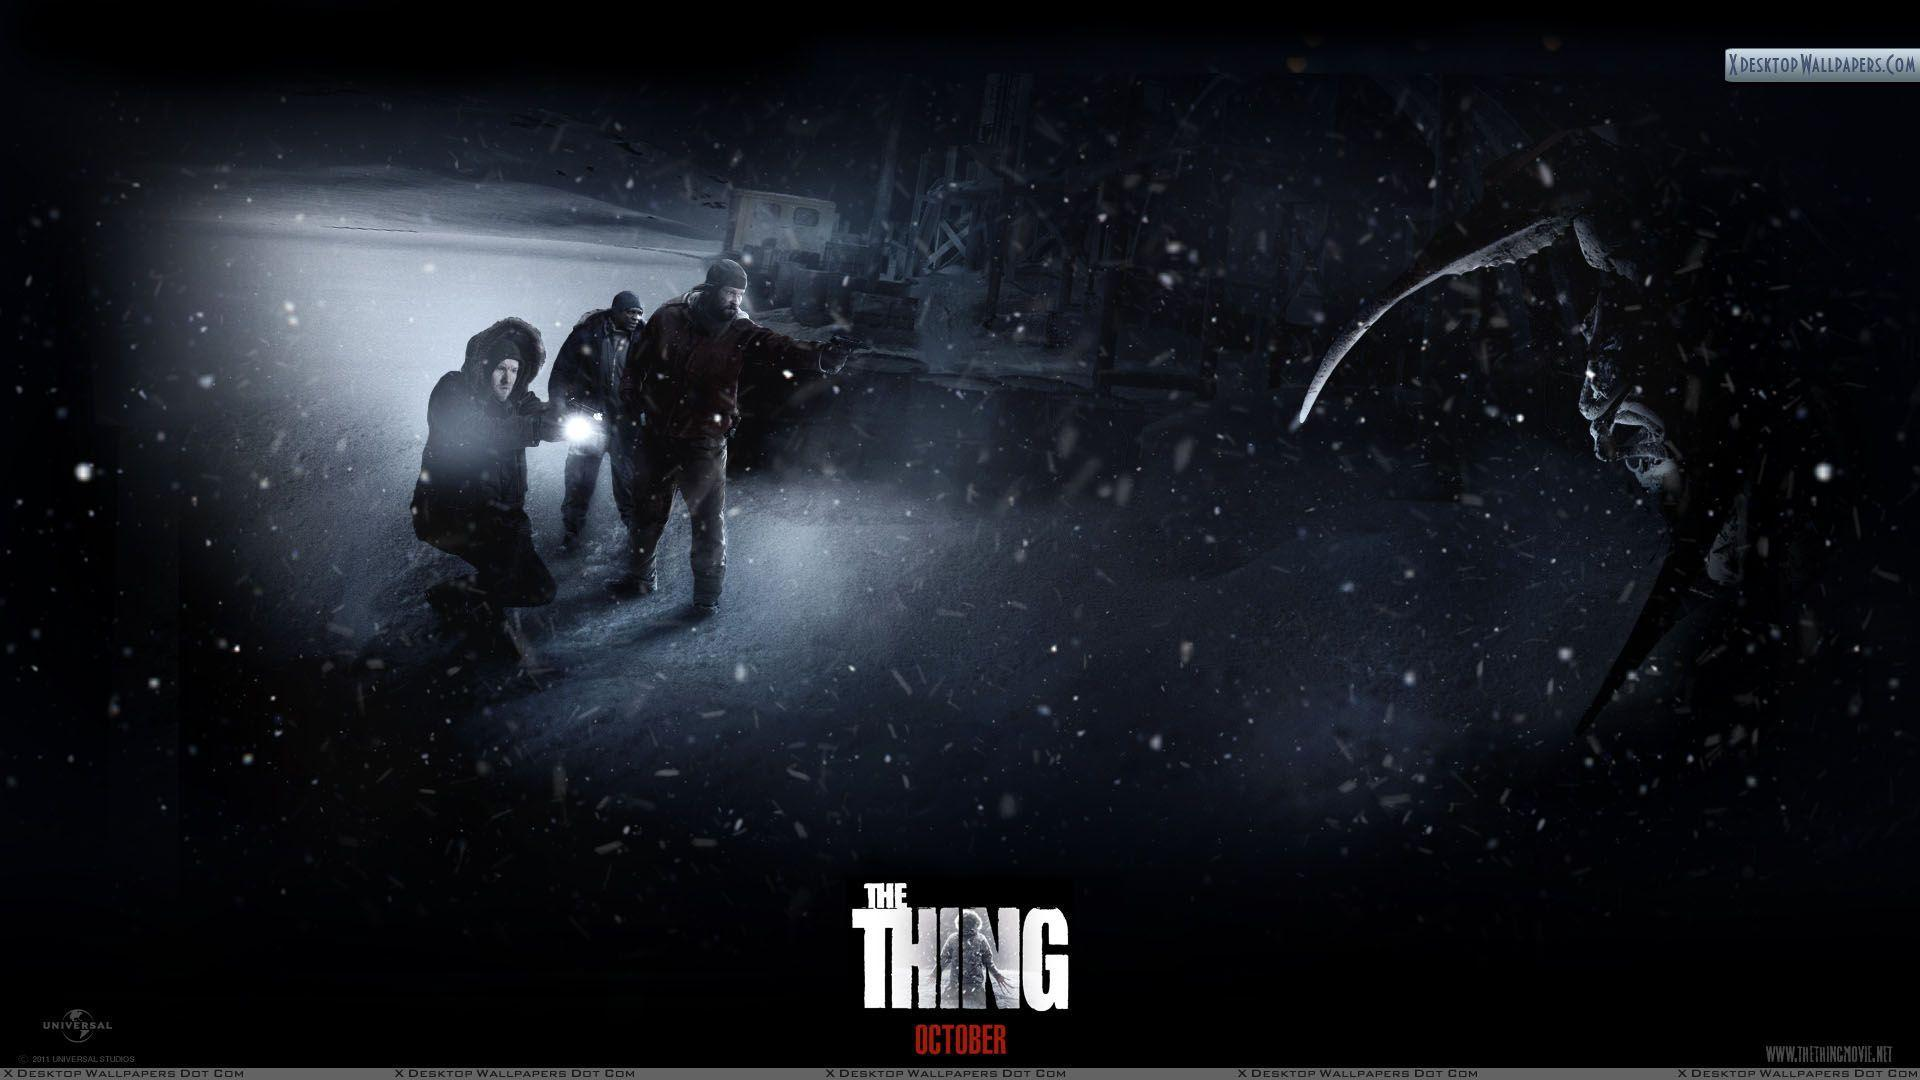 The Thing Wallpapers, Live The Thing Wallpapers (43), PC, Guan-CH